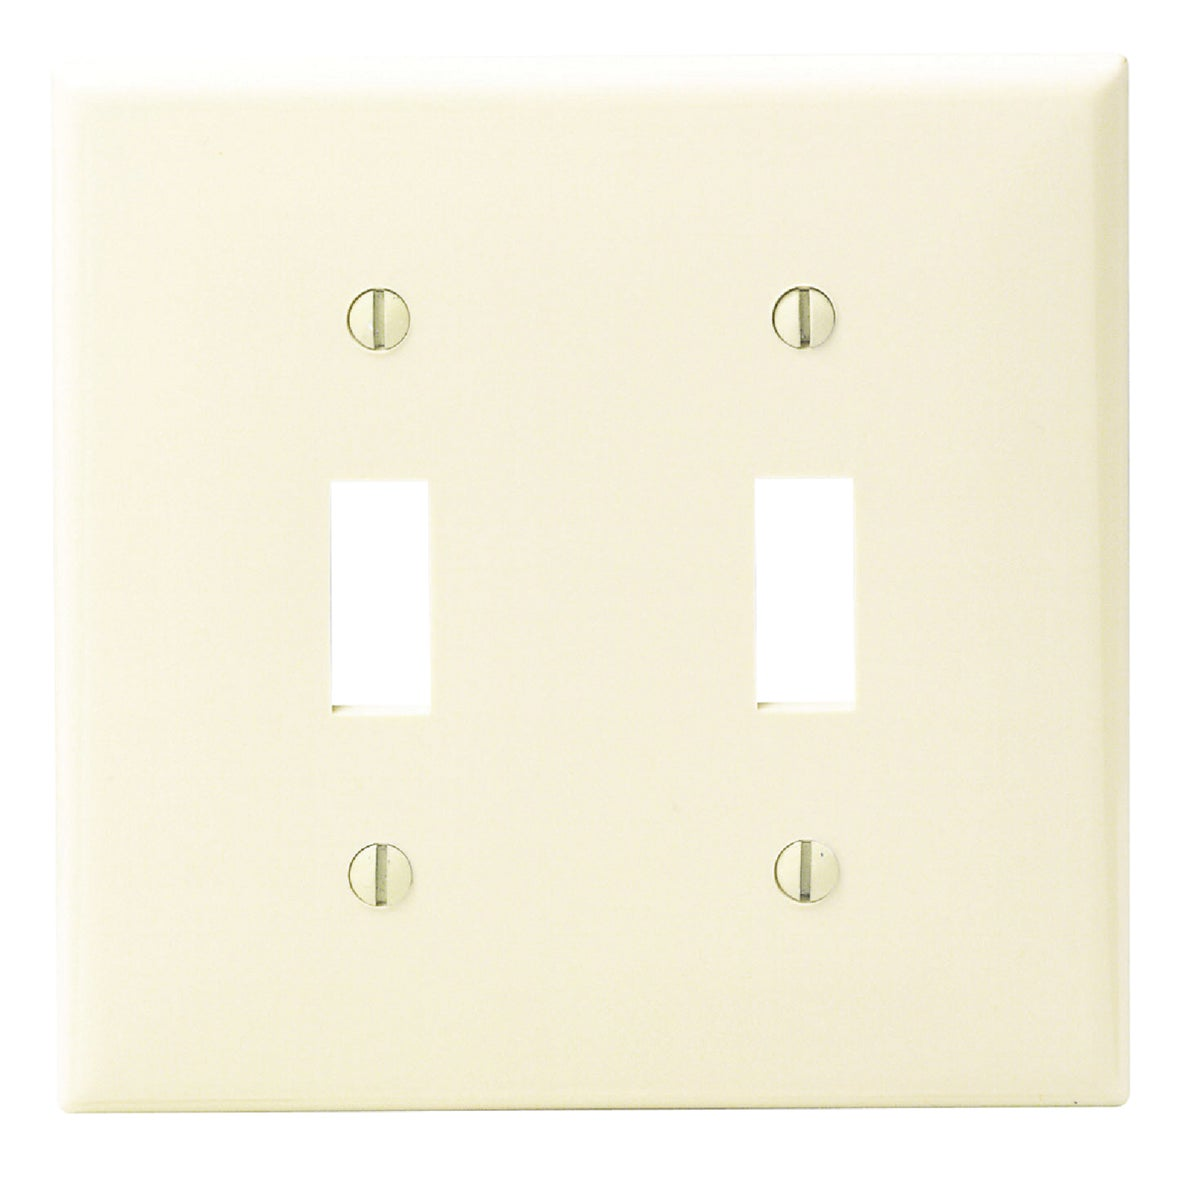 IV 2-TOGGLE WALL PLATE - 80709I by Leviton Mfg Co